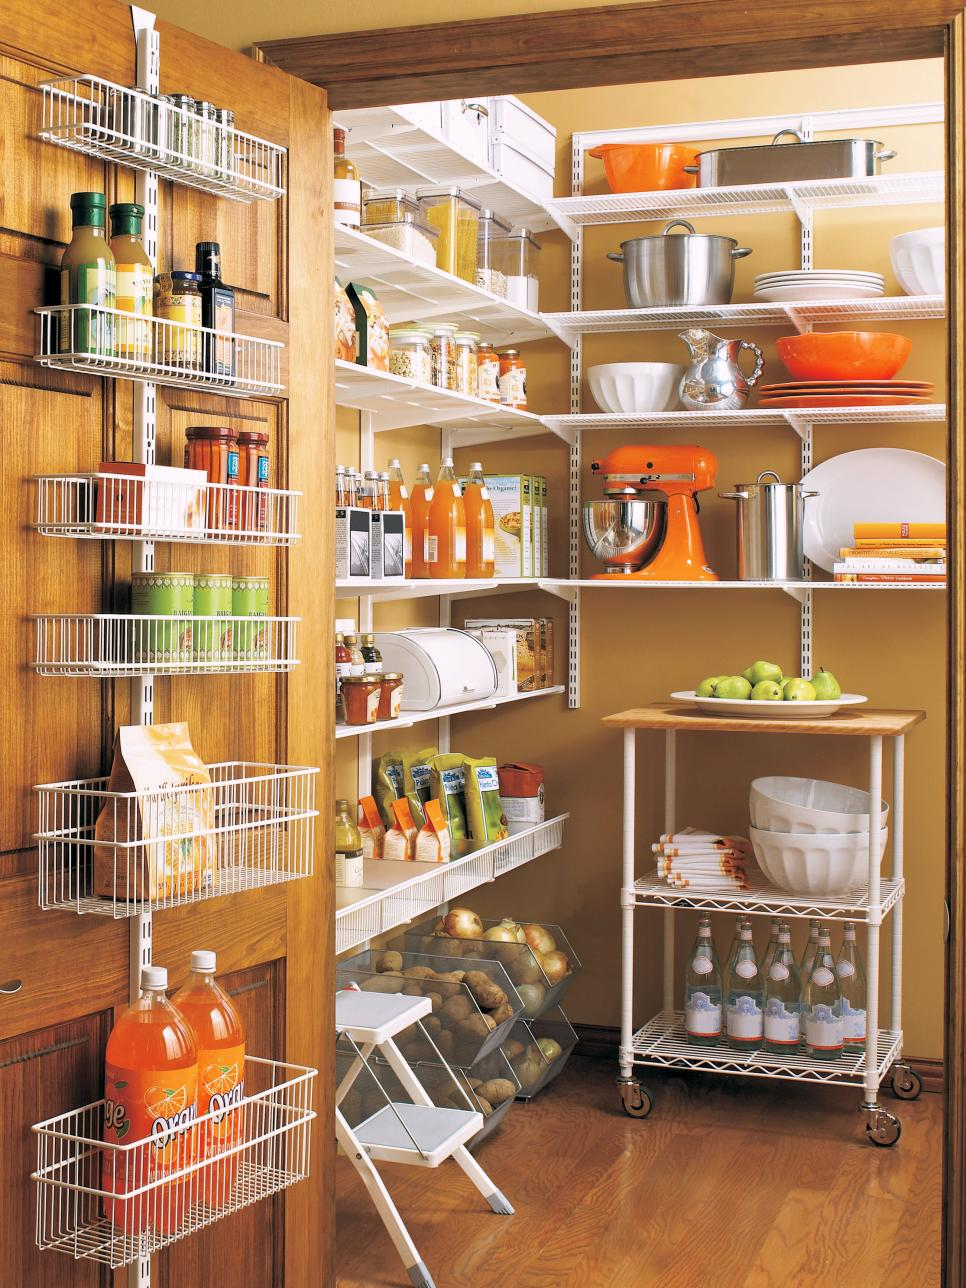 Why pantry organizers are important for your kitchen